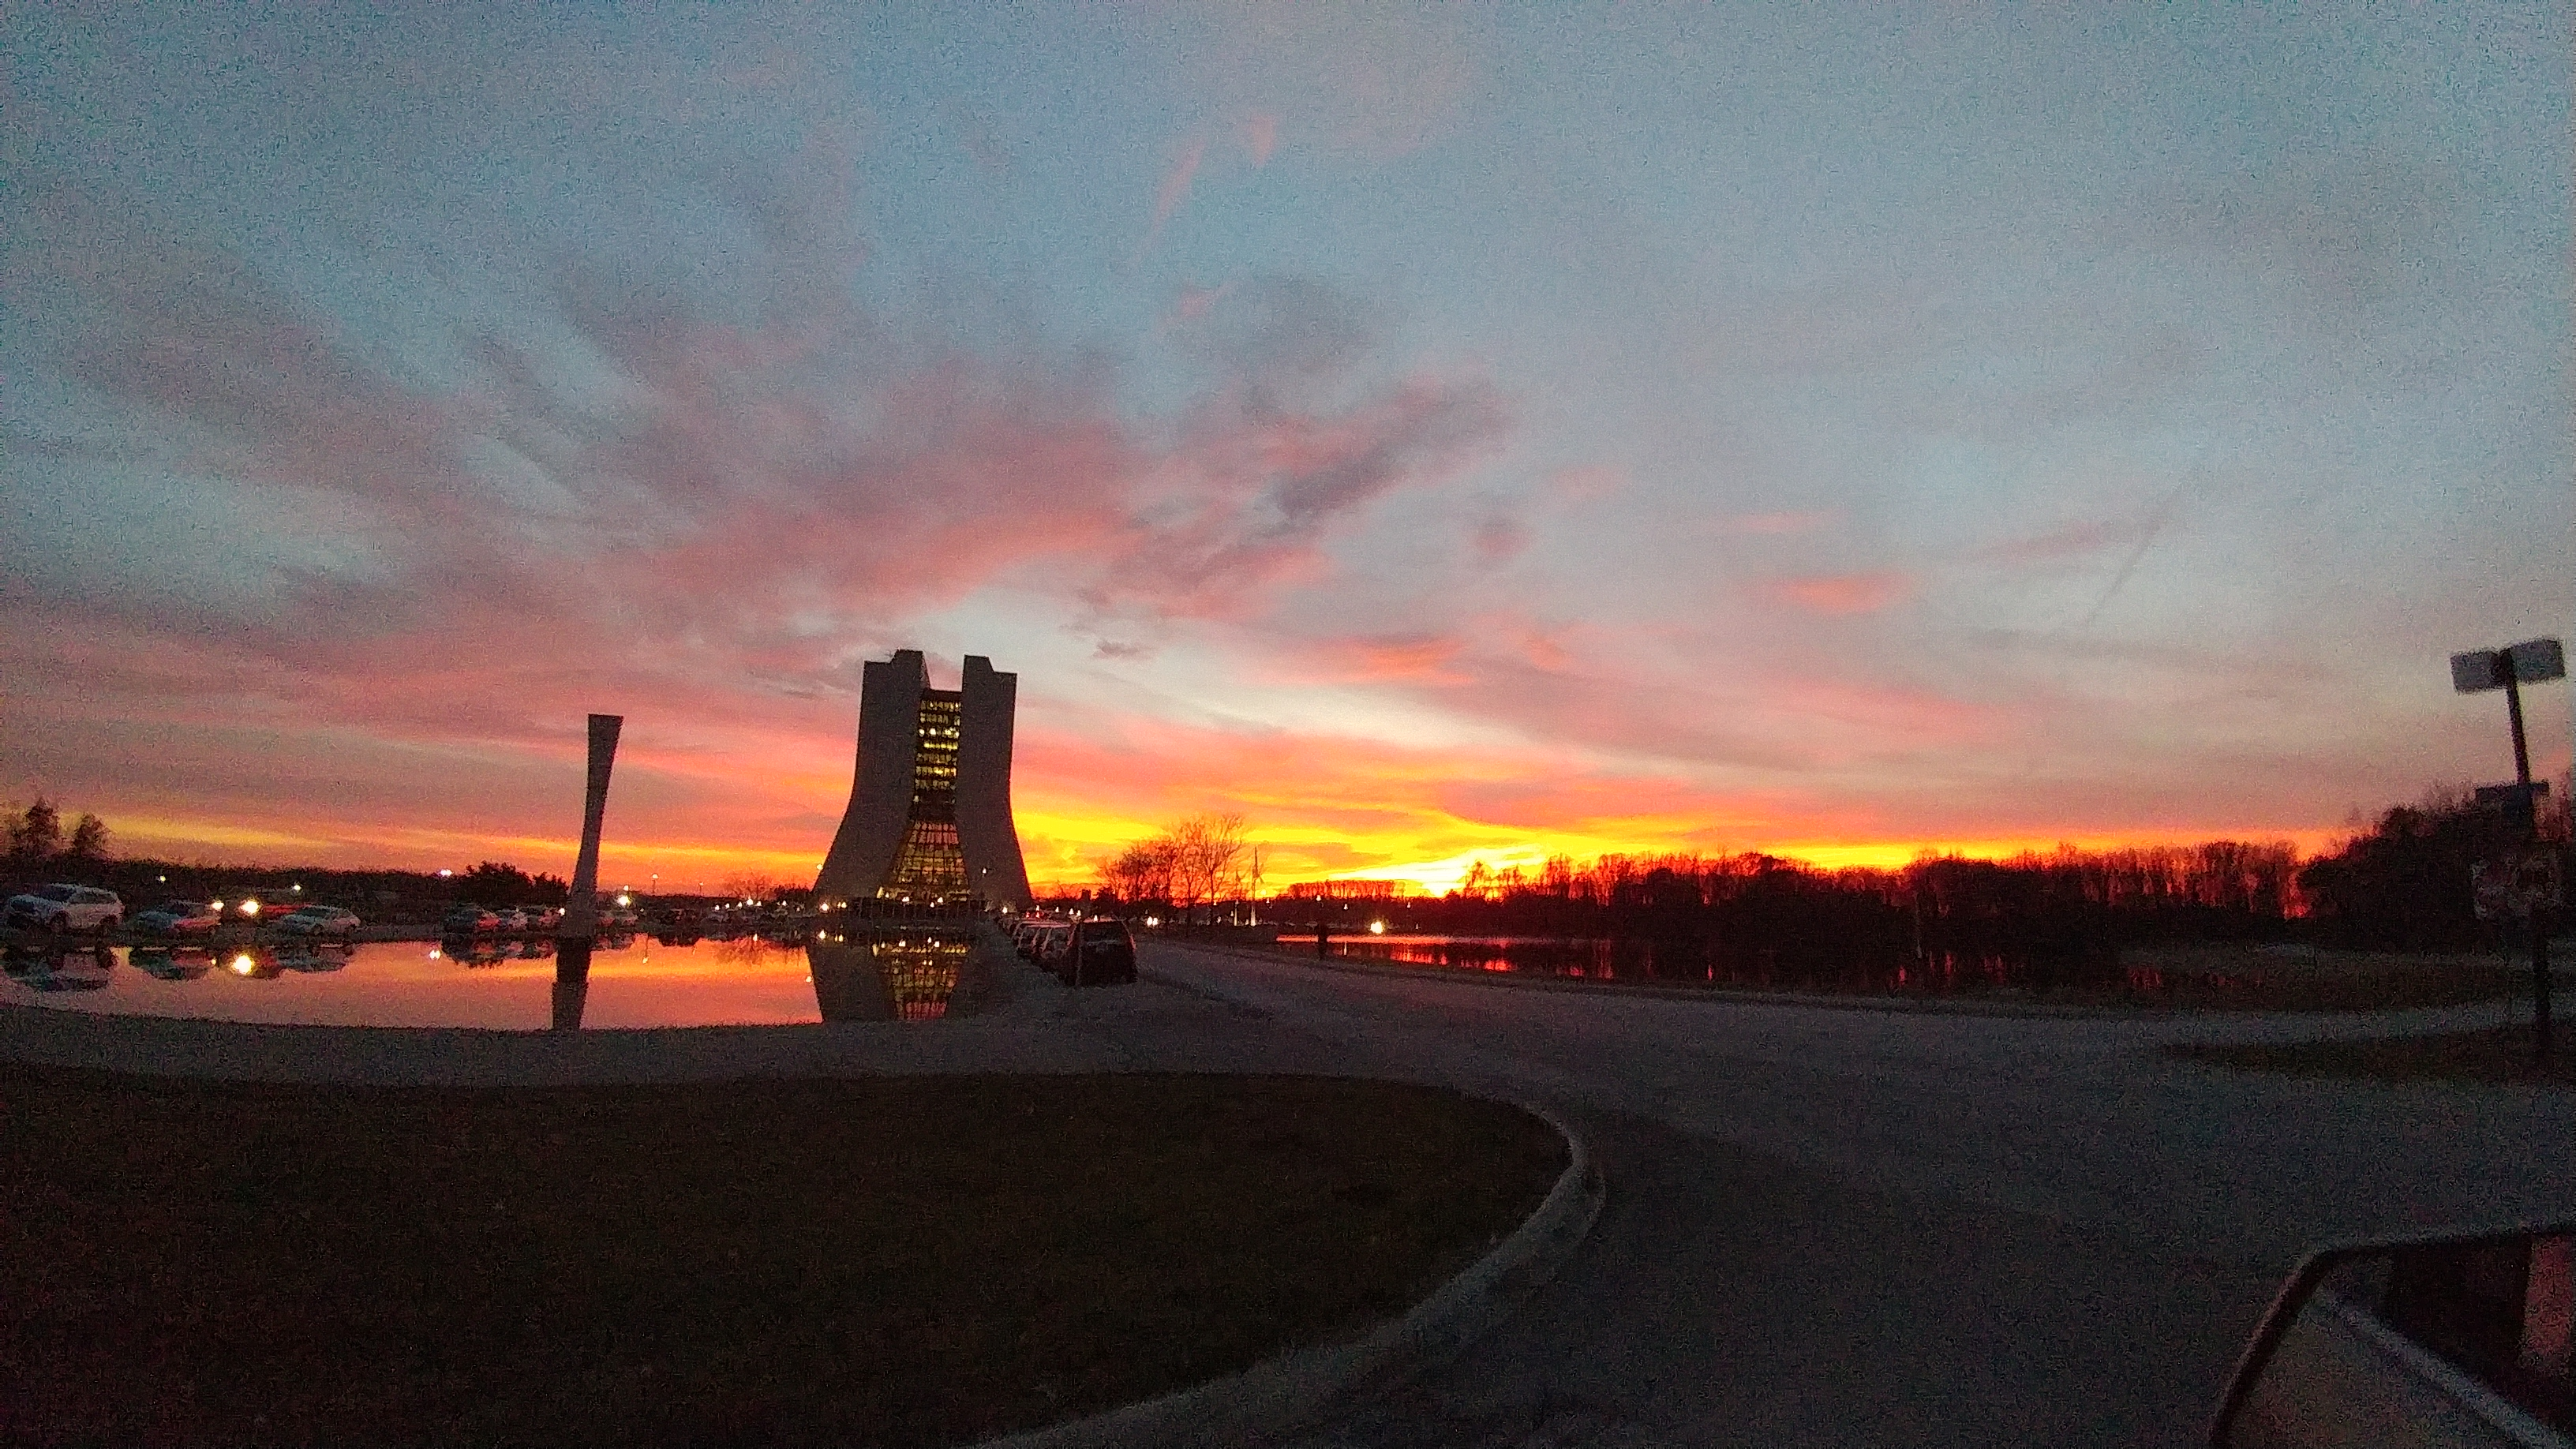 This is the sunset Fermilab workers saw as they left on Nov. 27. Photo: Jackie Zolna, sunset, sky, building, sun, landscape